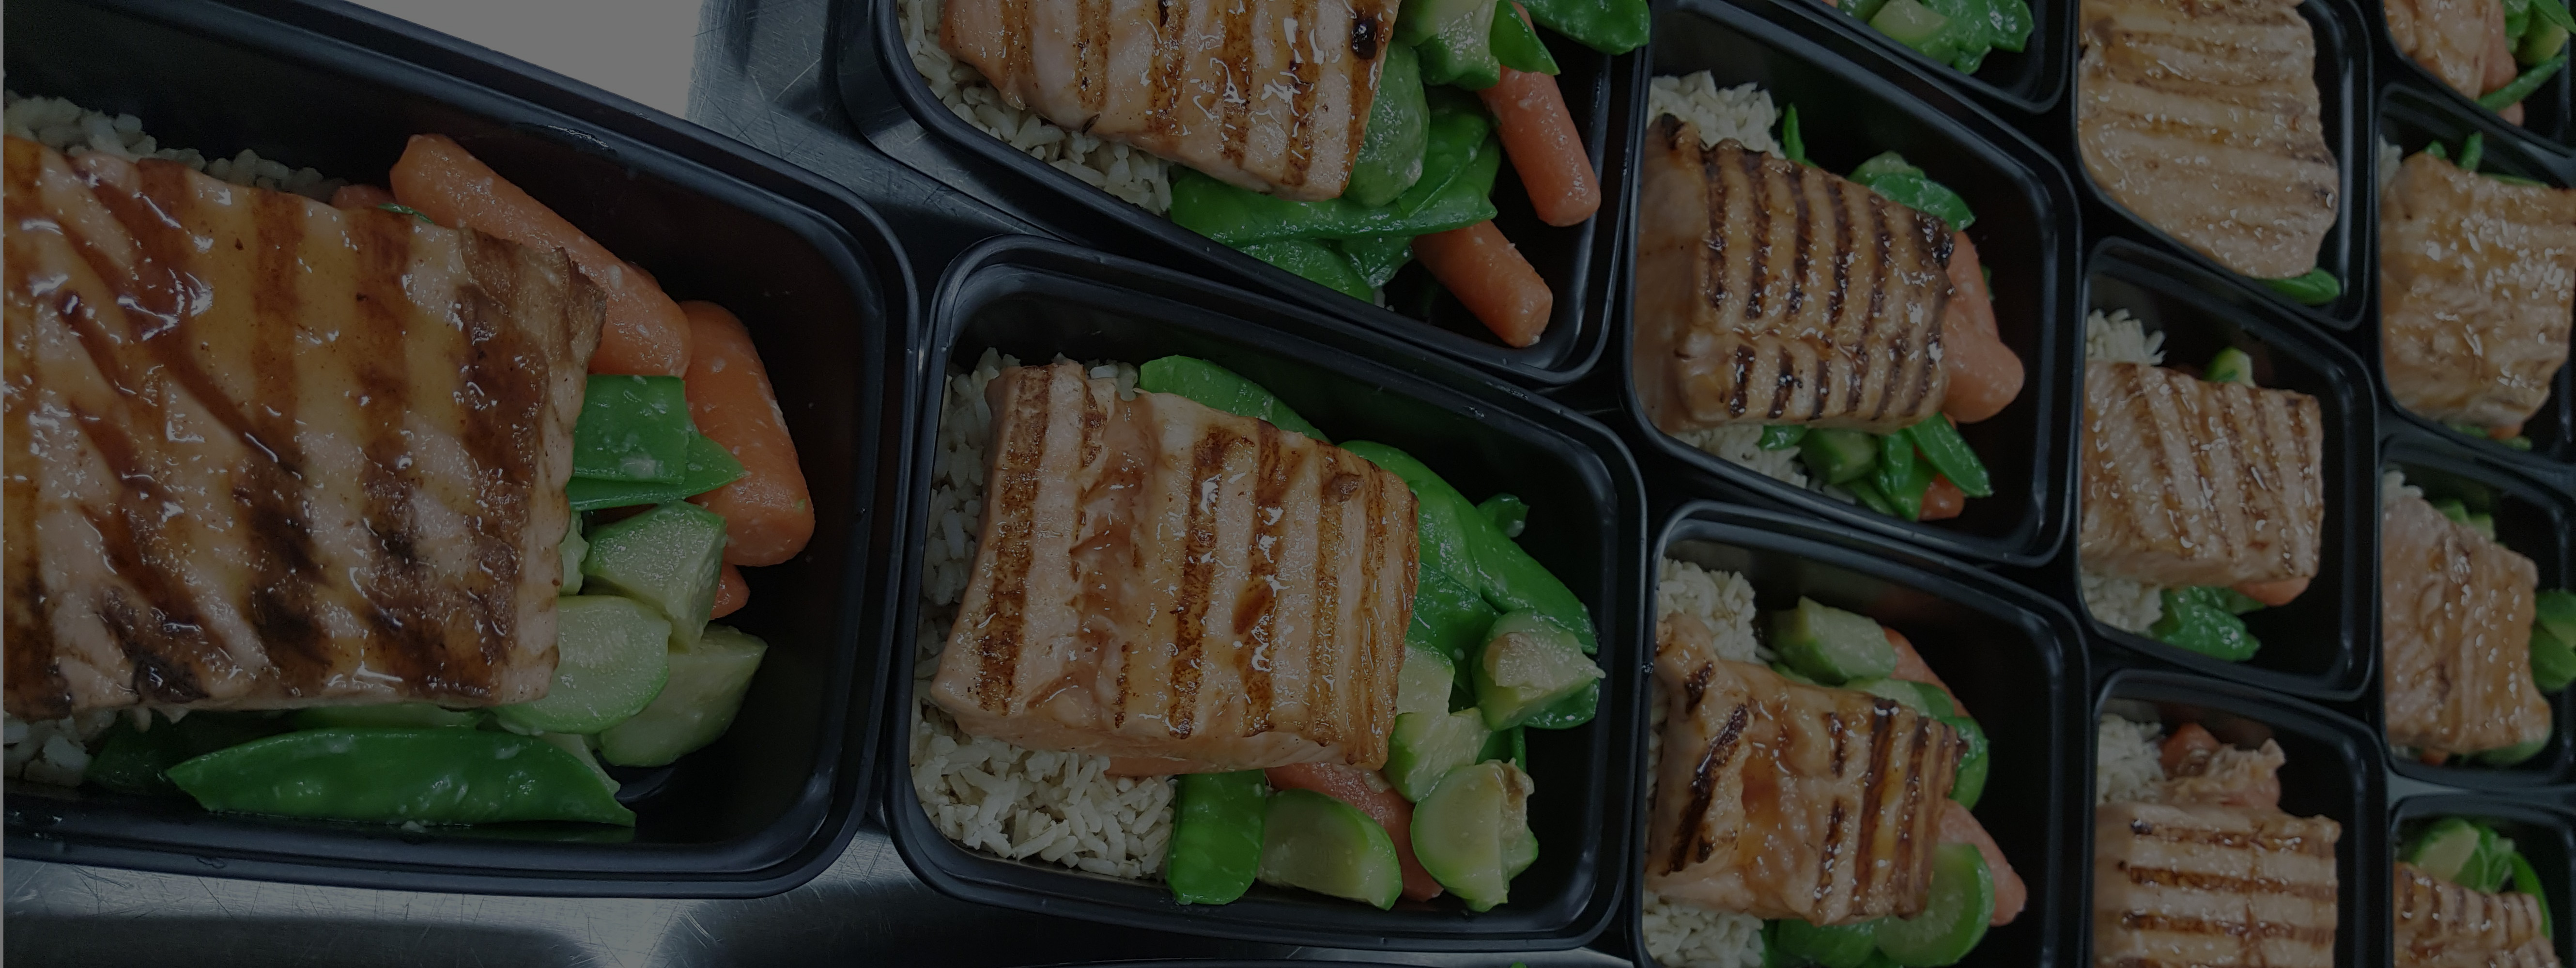 Gourmet Healthy Meal Delivery Fresh Meal Delivery